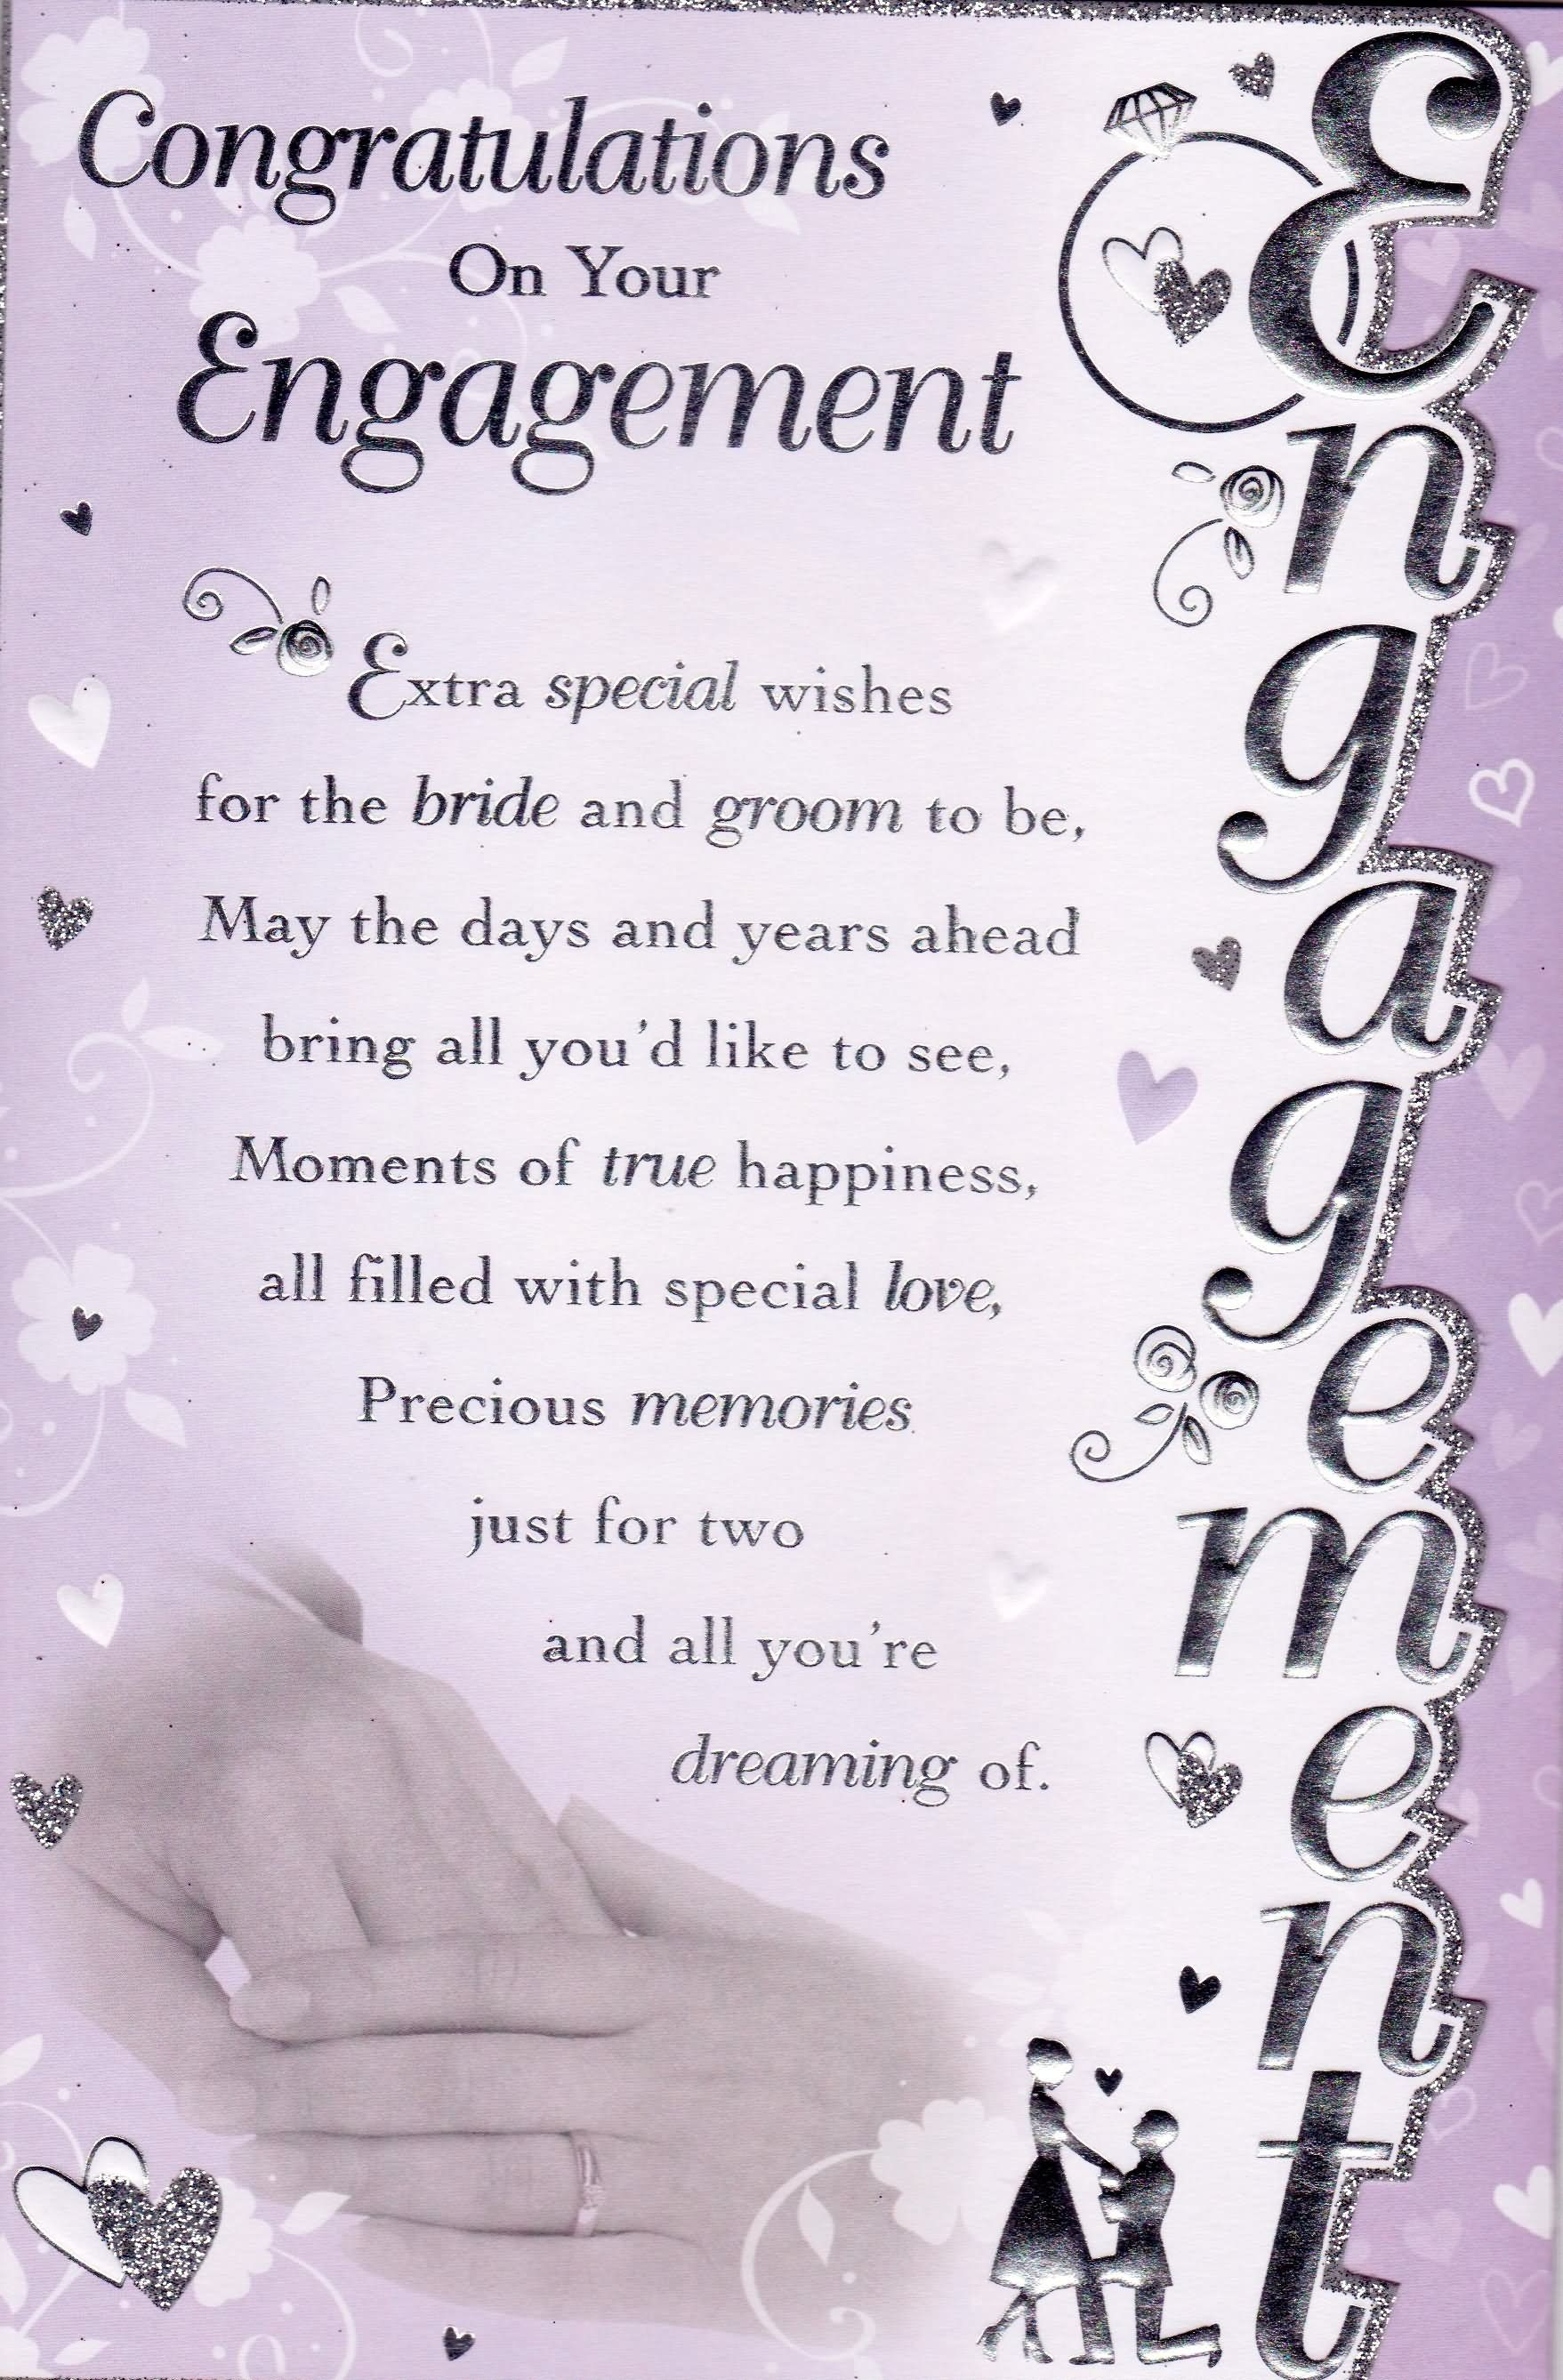 Congratulations On Your Engagement Greeting Card Flo Pinterest Engagement Greetings